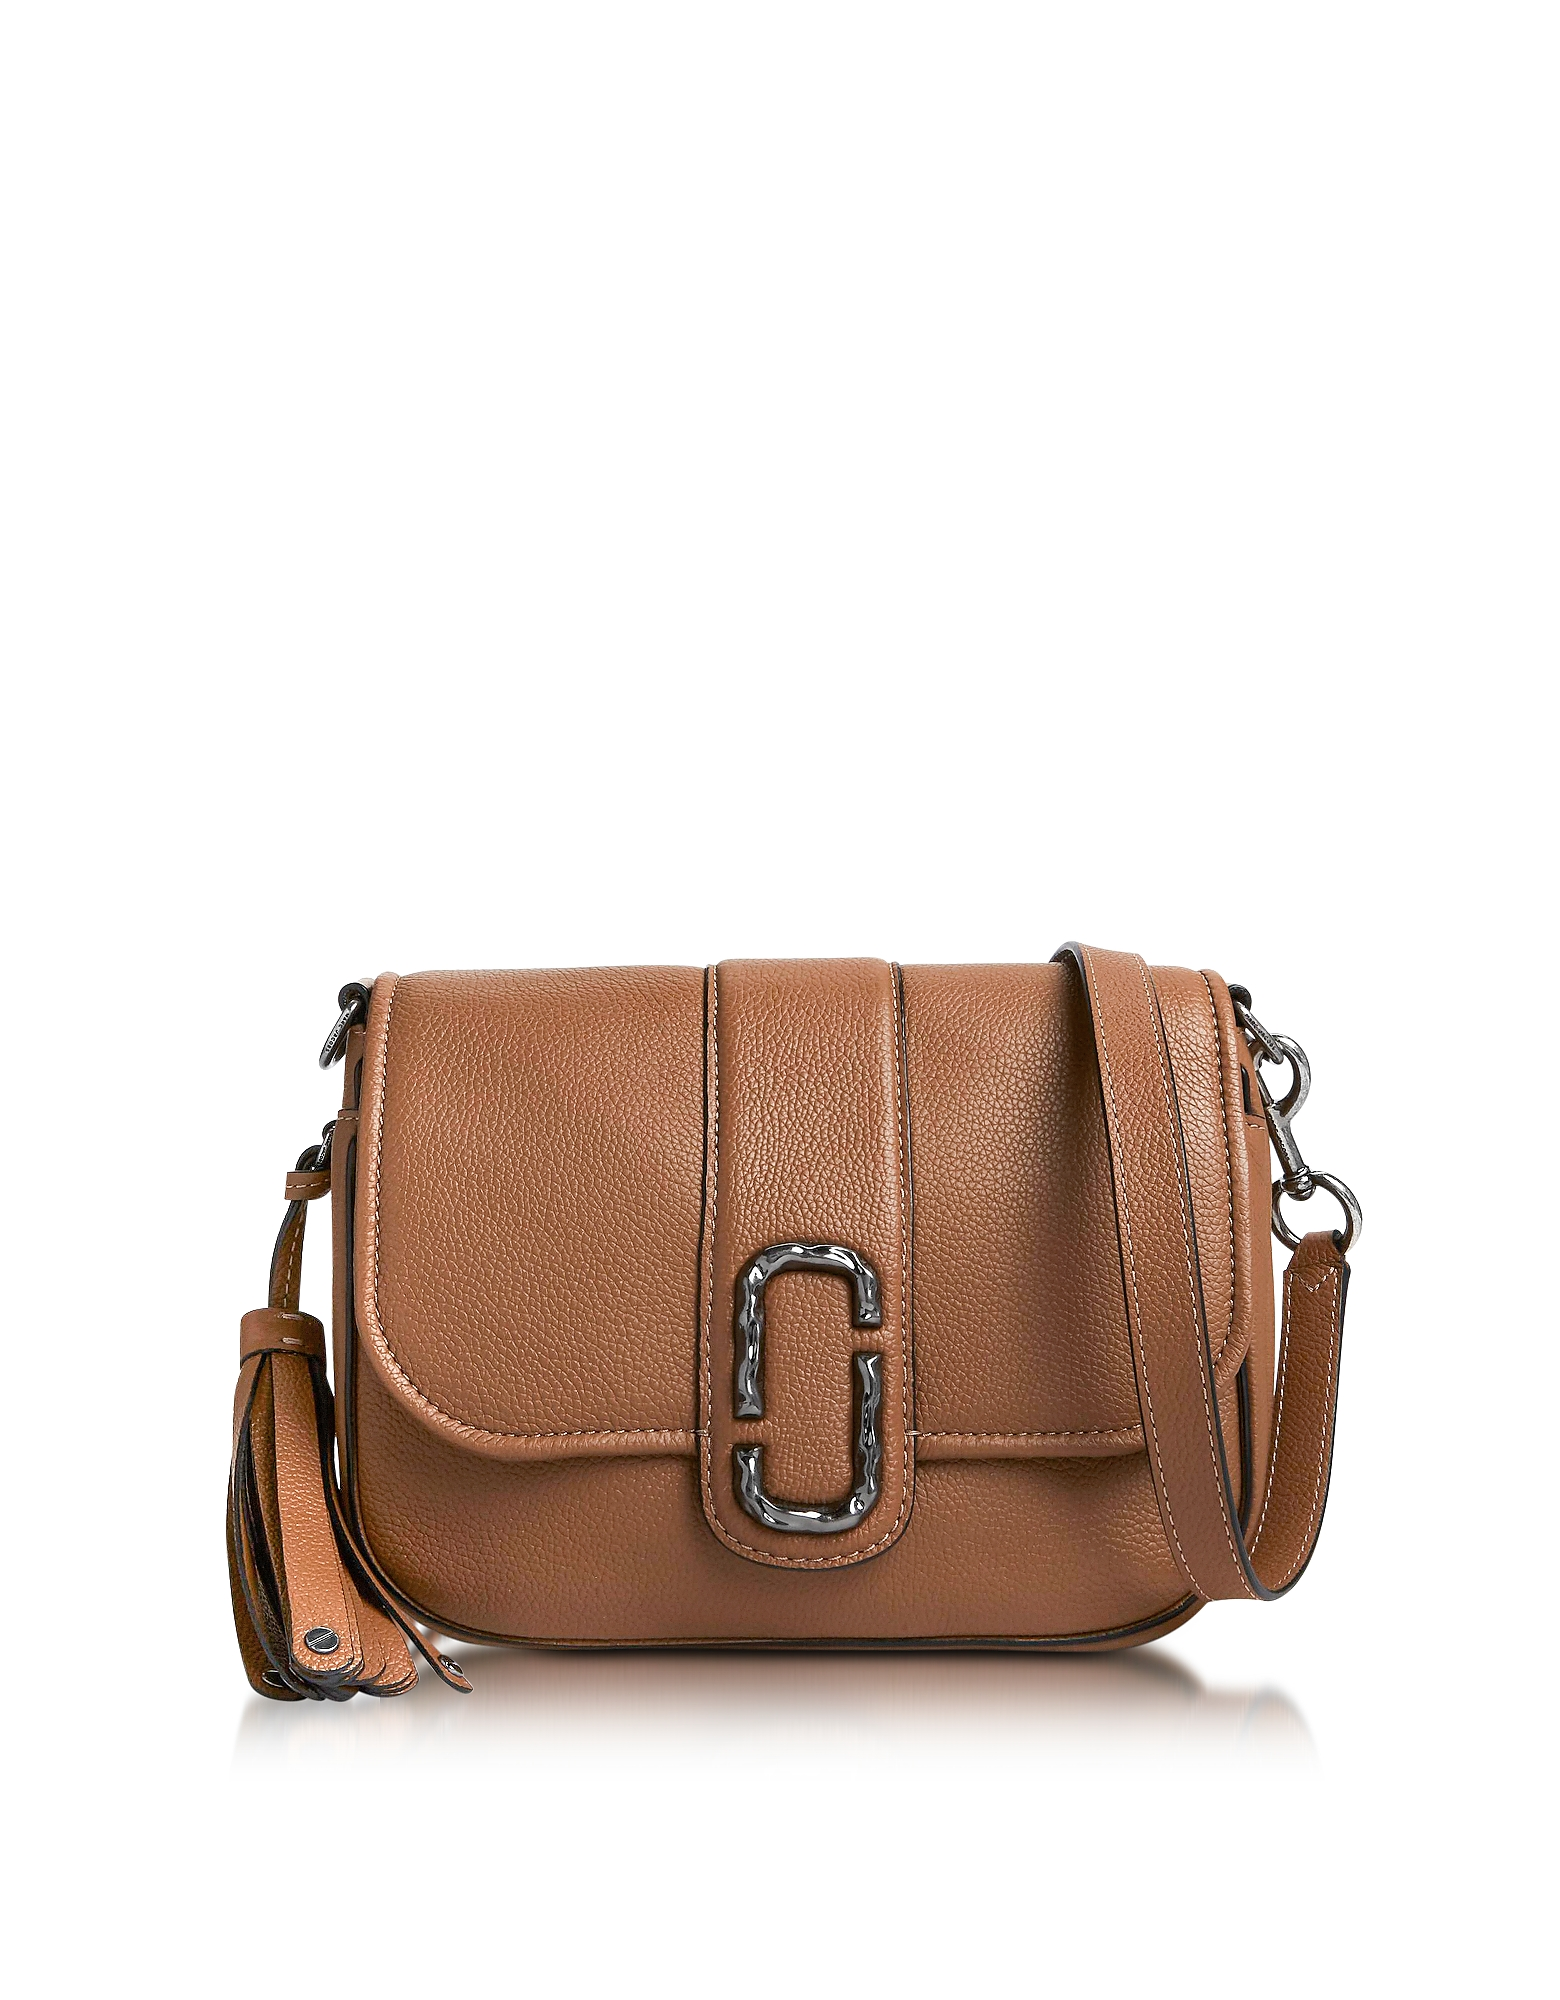 Marc Jacobs Handbags, Oak Pebbled Leather Interlock Small Courier Crossbody Bag